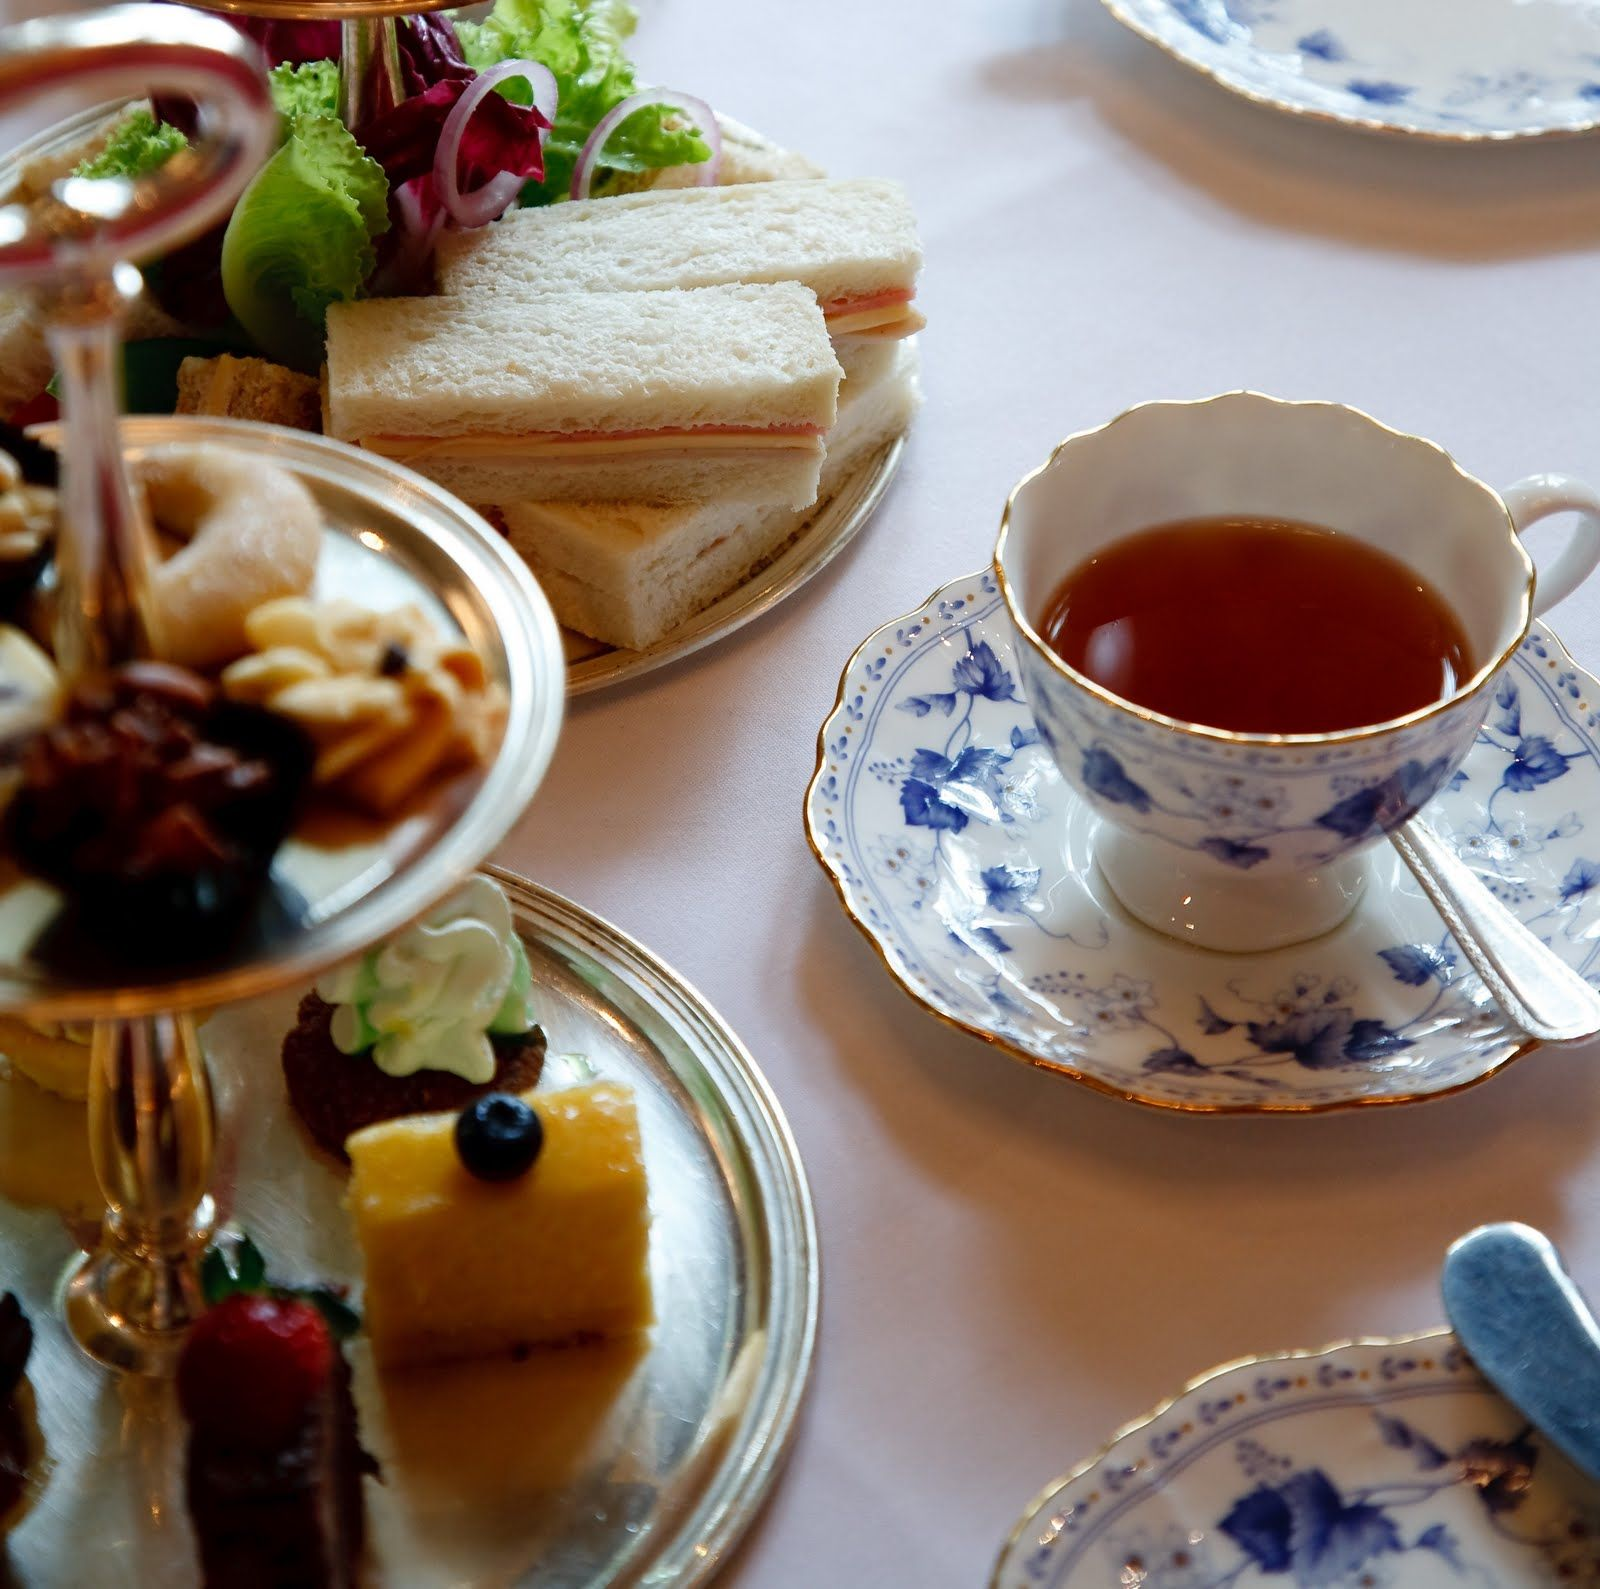 Another beautiful picture of High Tea.